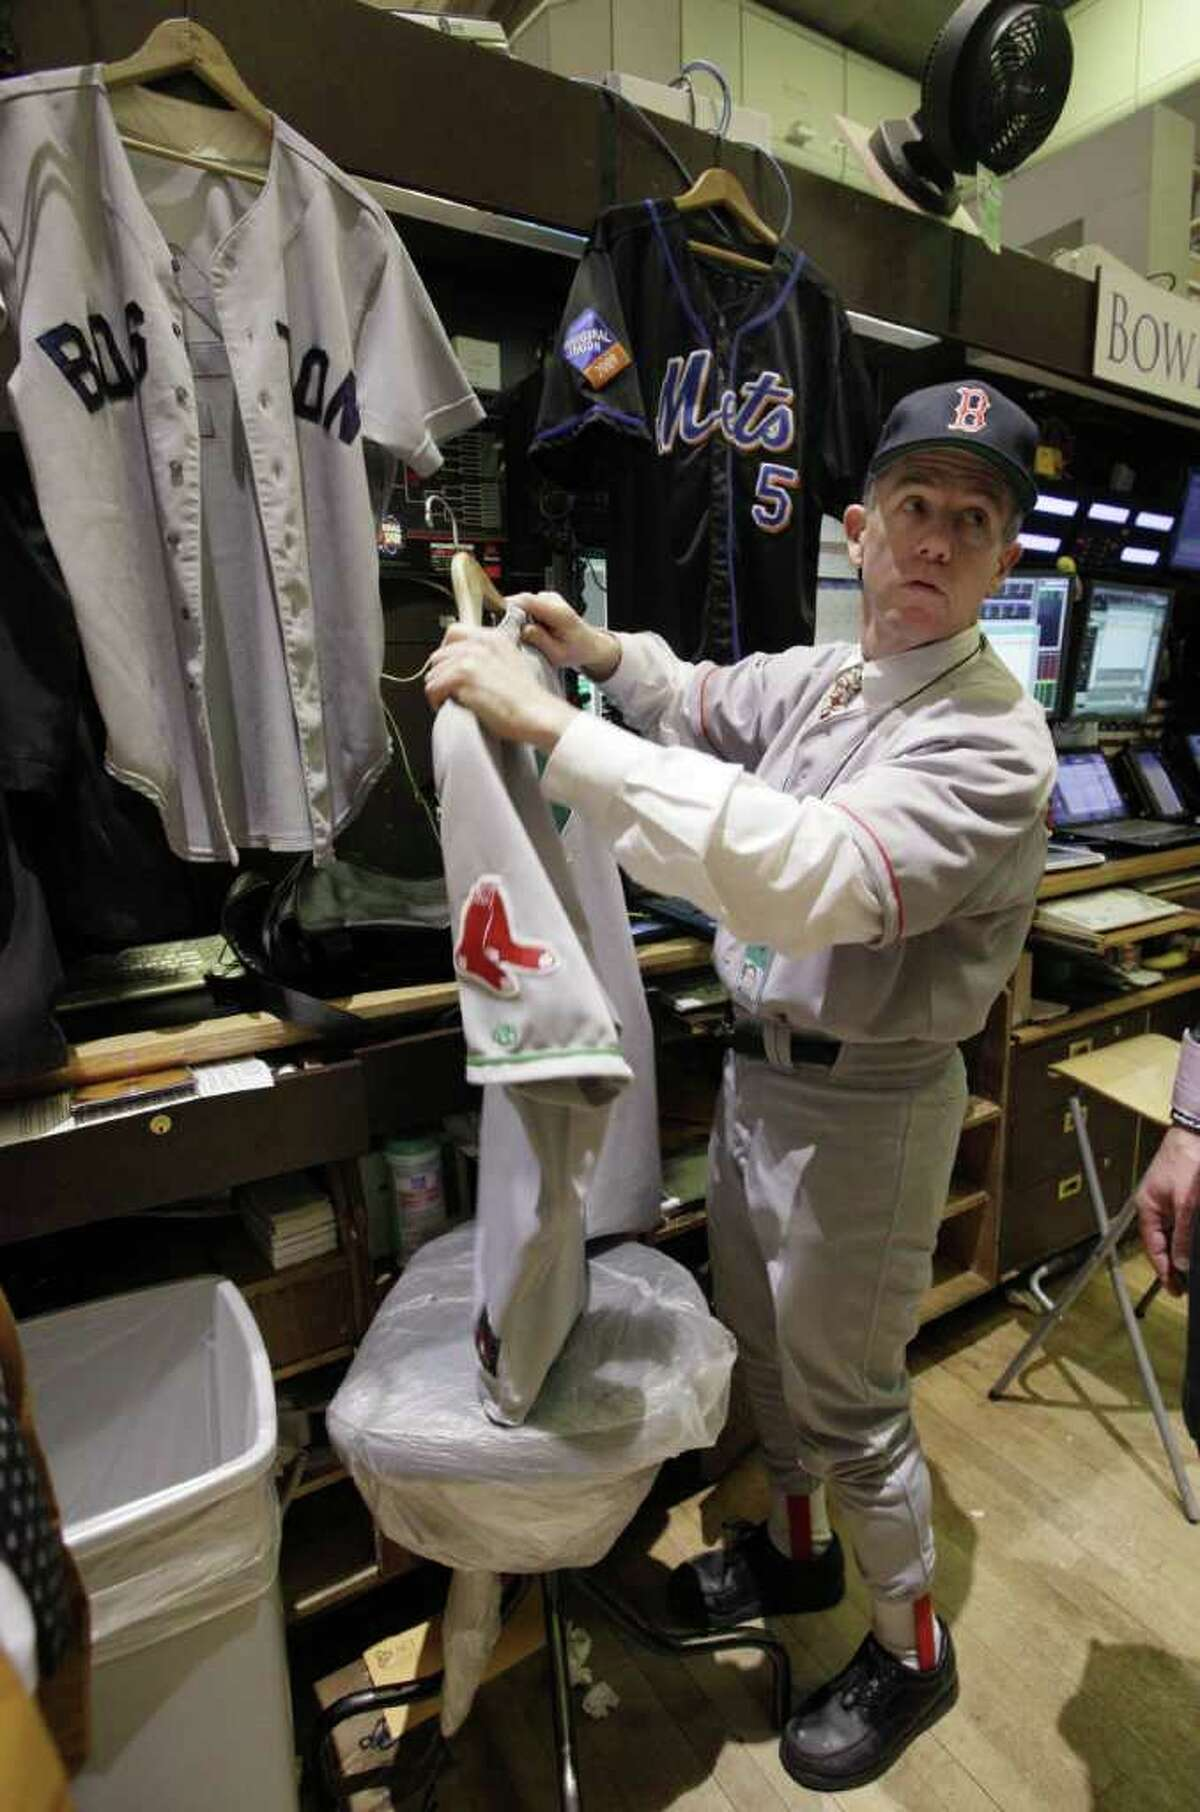 Michael Quinn, with Bowers Securities, is dressed in Boston Red Sox uniform, and sorts through other of his baseball jerseys, as he works on the floor of the New York Stock Exchange, on Major League Baseball's opening day, Thursday, March 31, 2011.